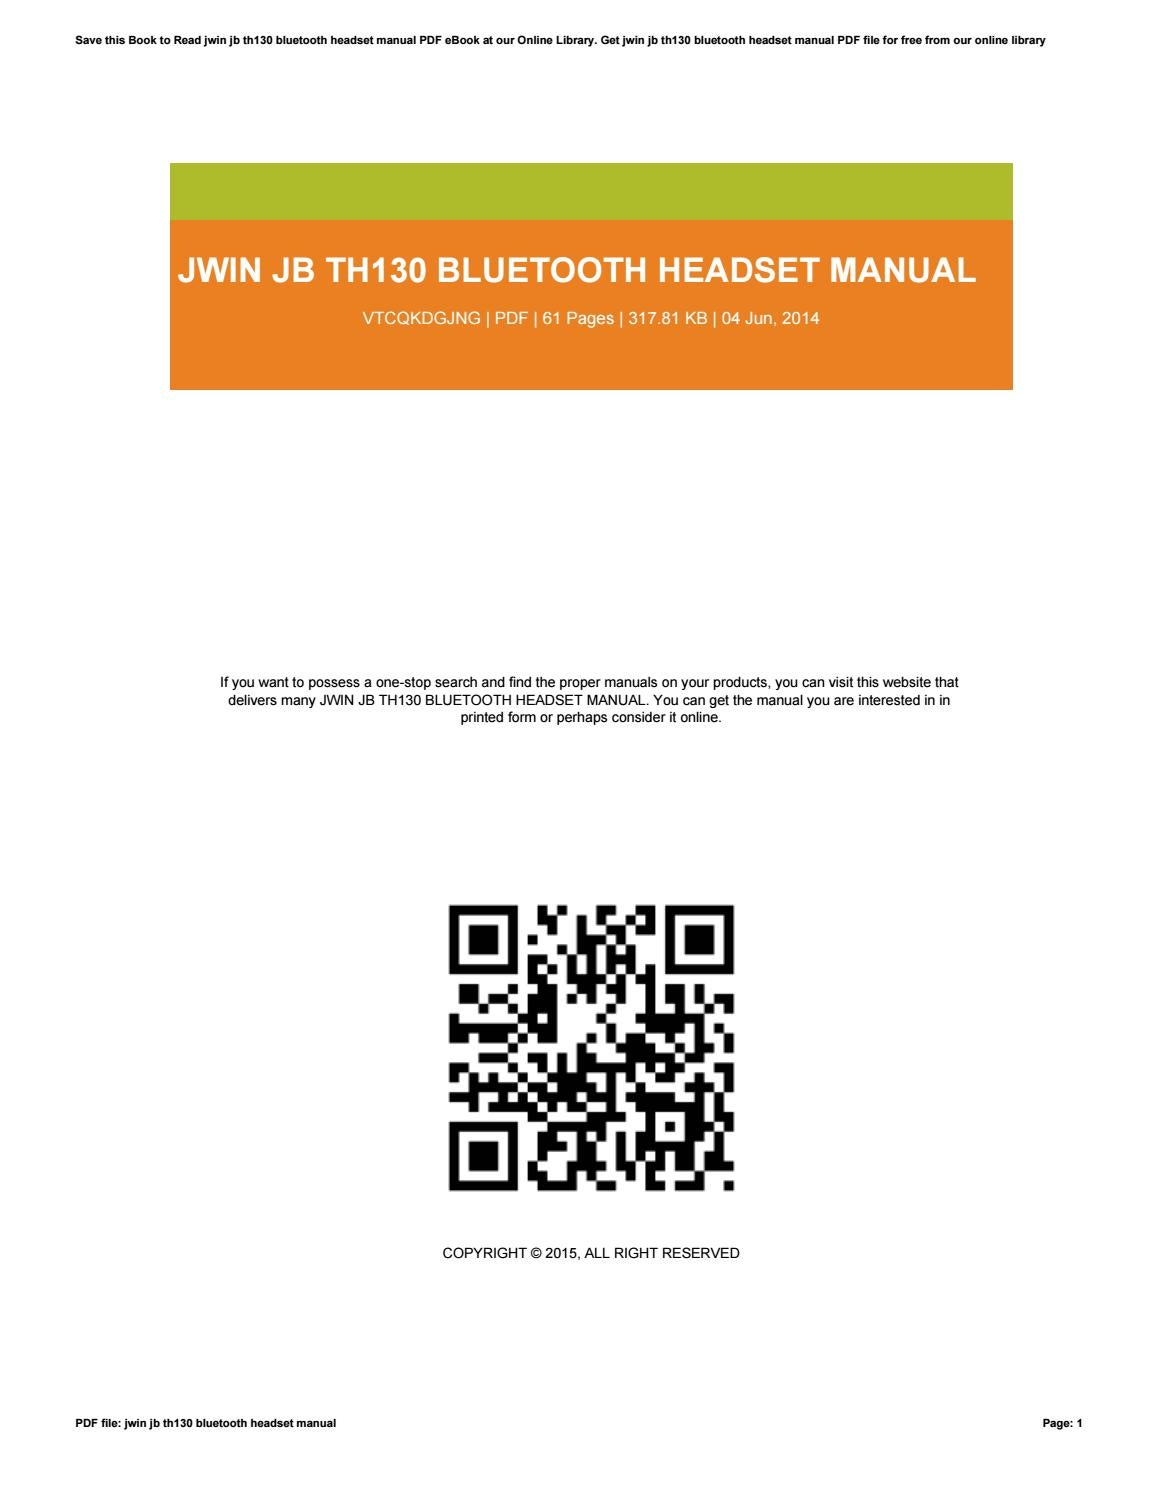 jwin jb th130 bluetooth headset manual by jonmann3345 issuu rh issuu com